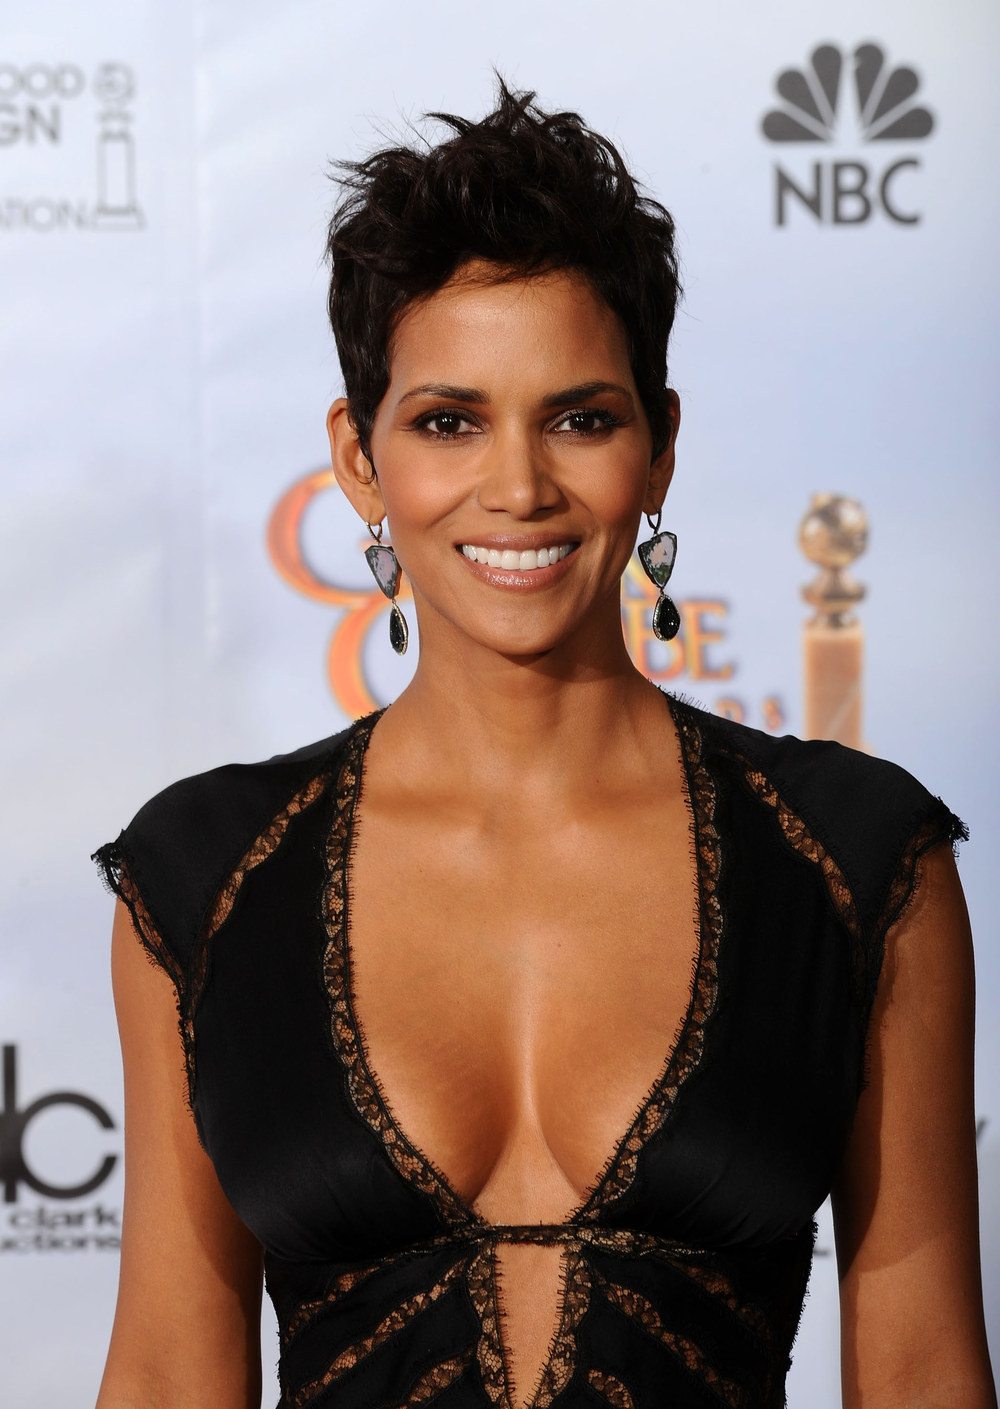 1000x1409 > Halle Berry Wallpapers